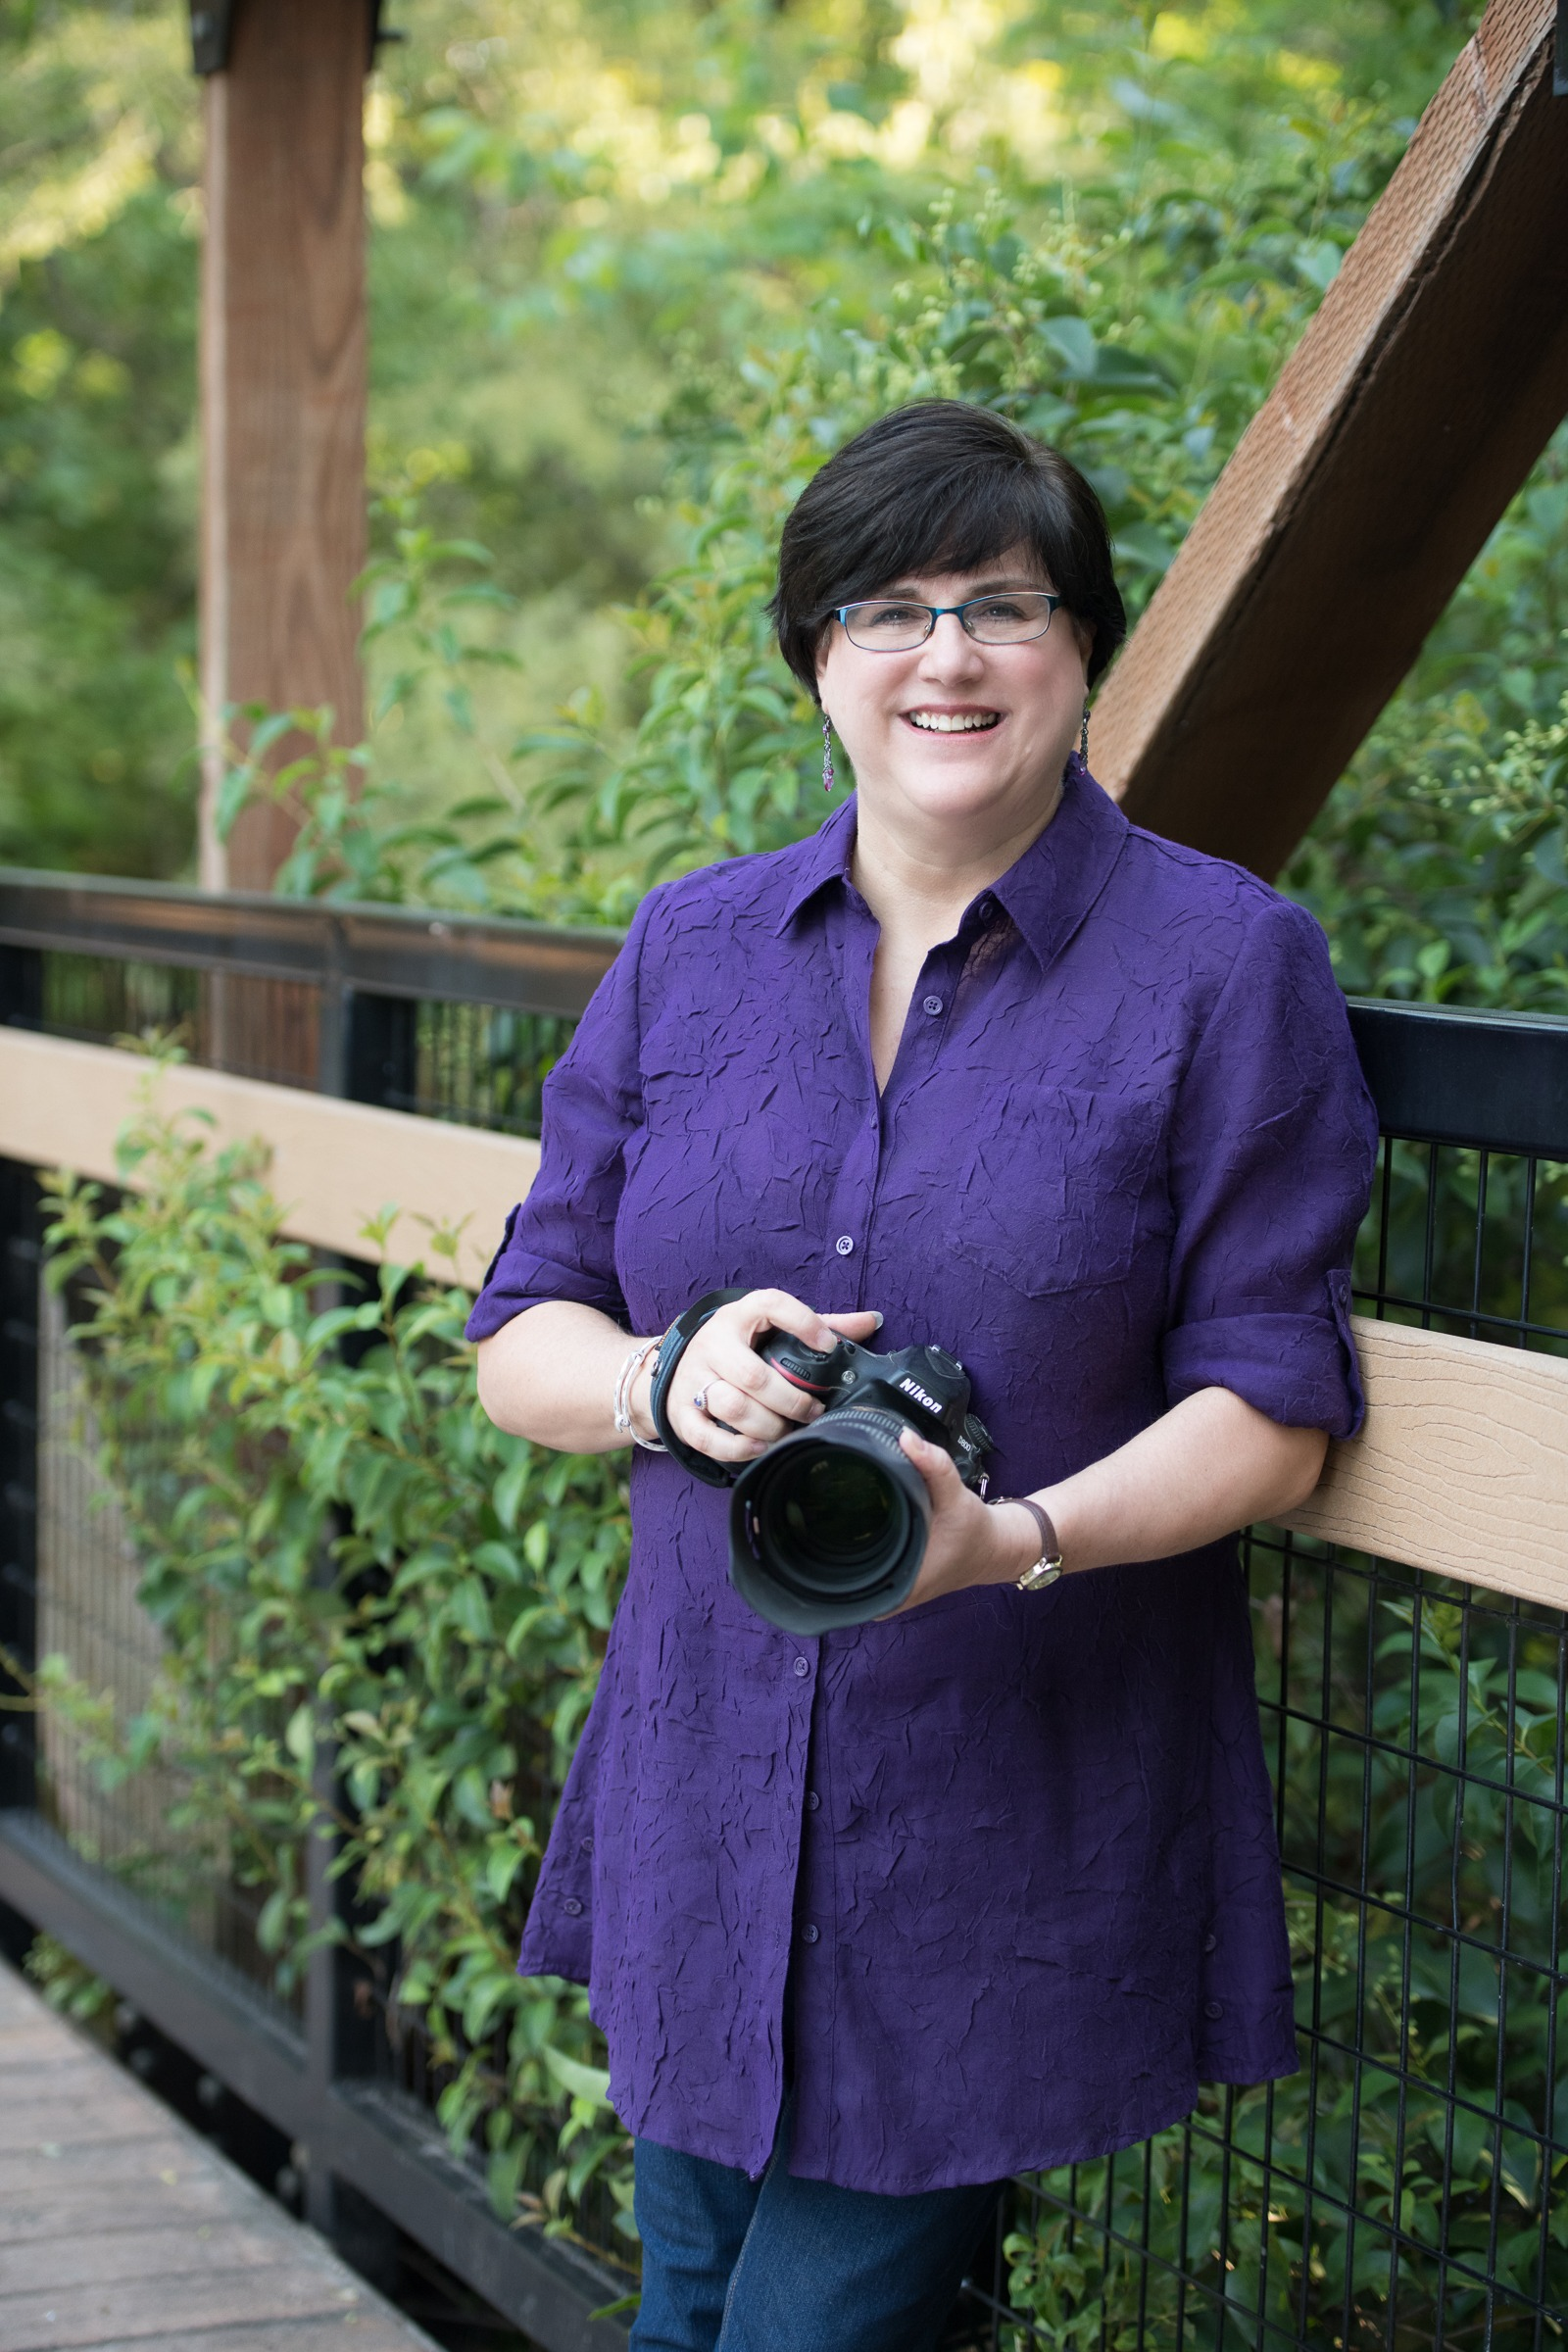 Sheila Brauning Photography at Prairie Creek Park in Richardson Texas